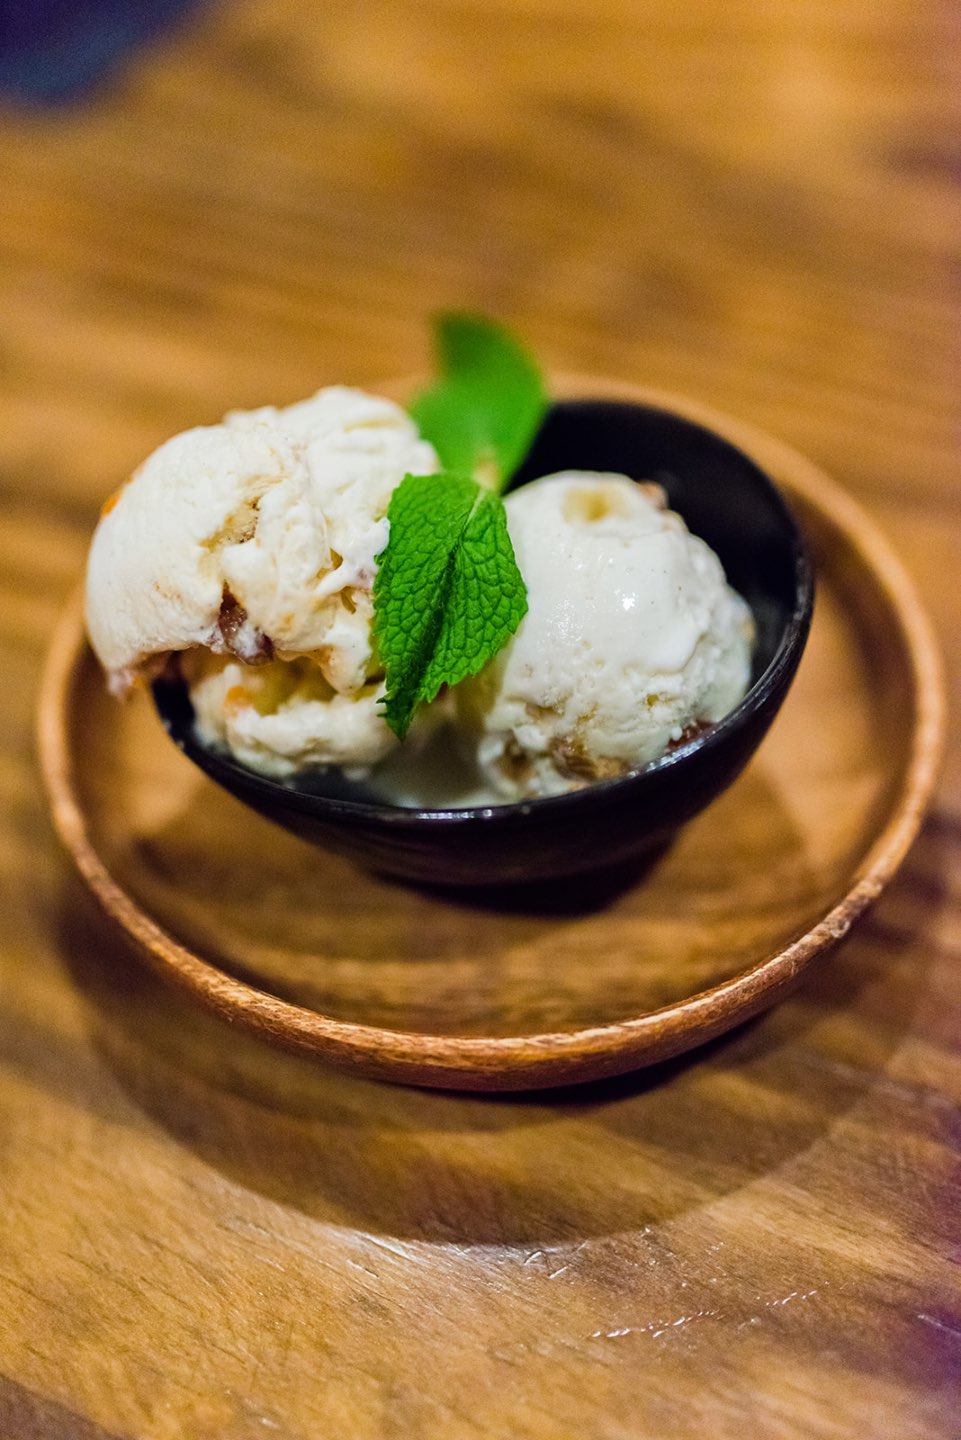 Top 5 Best Destination Restaurants in Eastern NC you Need to Try - I'm Fixin' To - @mbg0112 | Top 5 Best Destination Restaurants in Eastern NC you Need to Try by popular North Carolina blog, I'm Fixin' To: image of a bowl of ice cream at The Hen and the Hog.